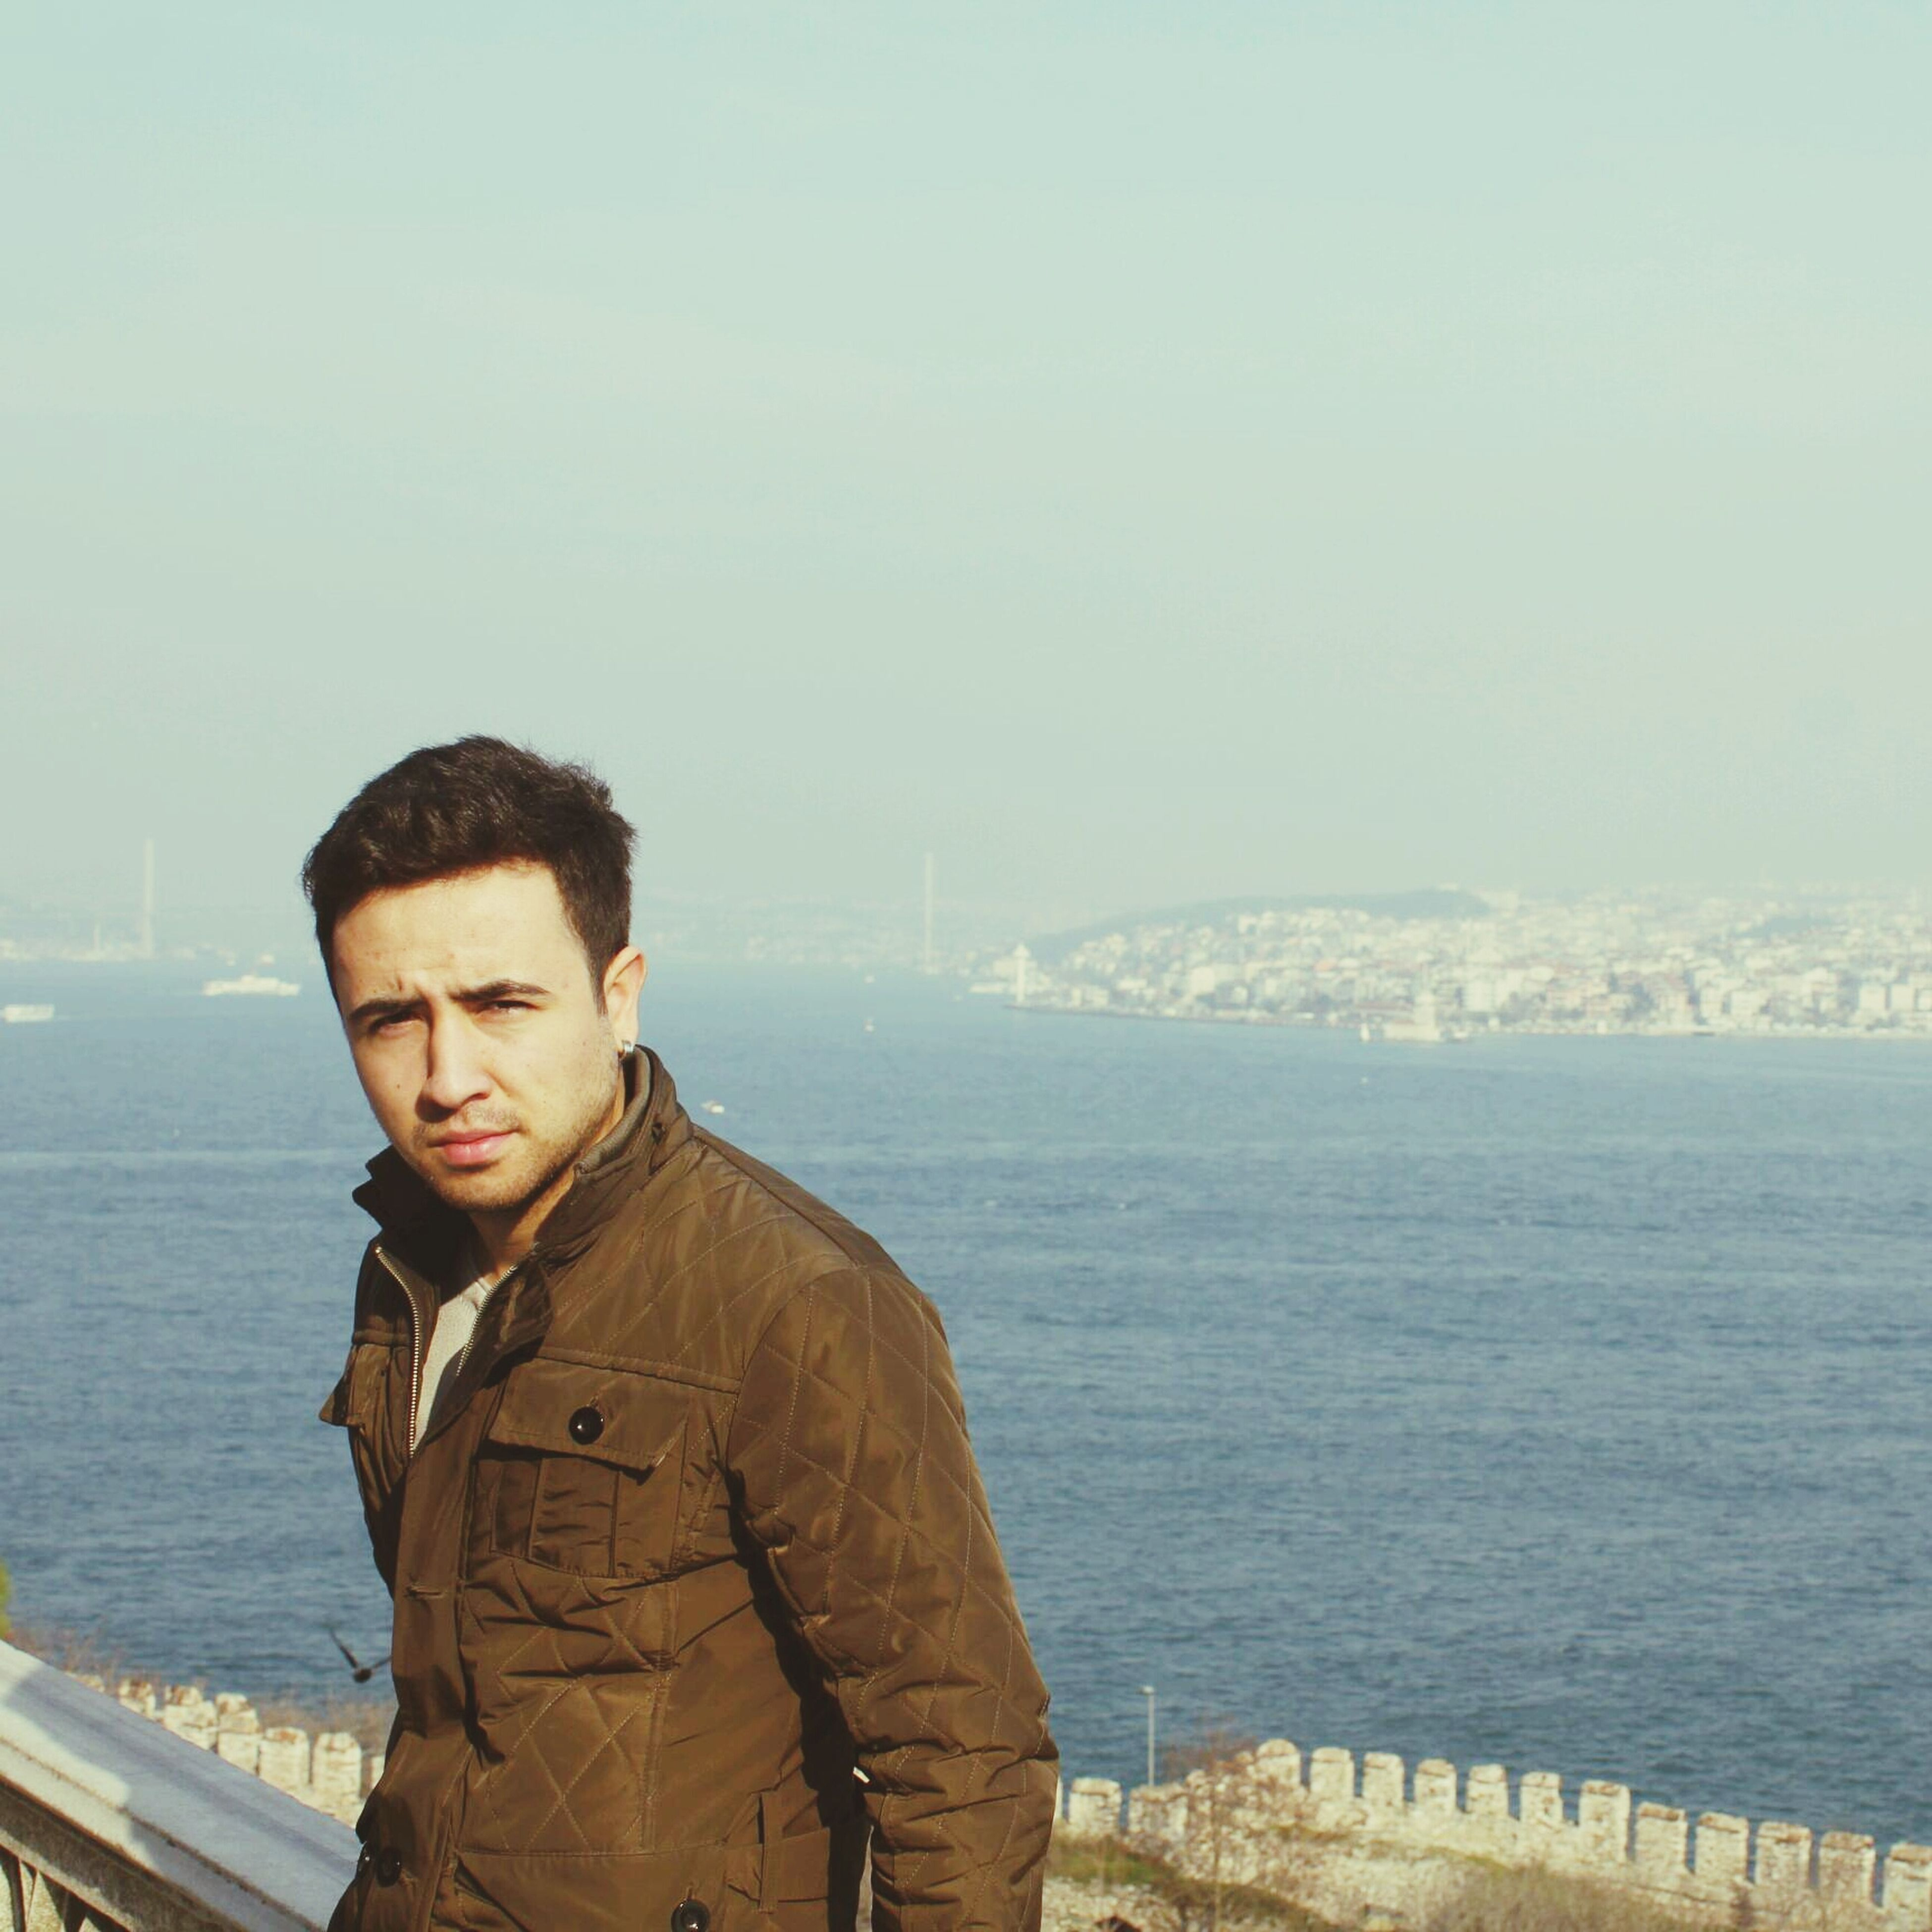 lifestyles, water, person, young adult, young men, leisure activity, casual clothing, standing, looking at camera, smiling, sea, portrait, waist up, three quarter length, clear sky, front view, sky